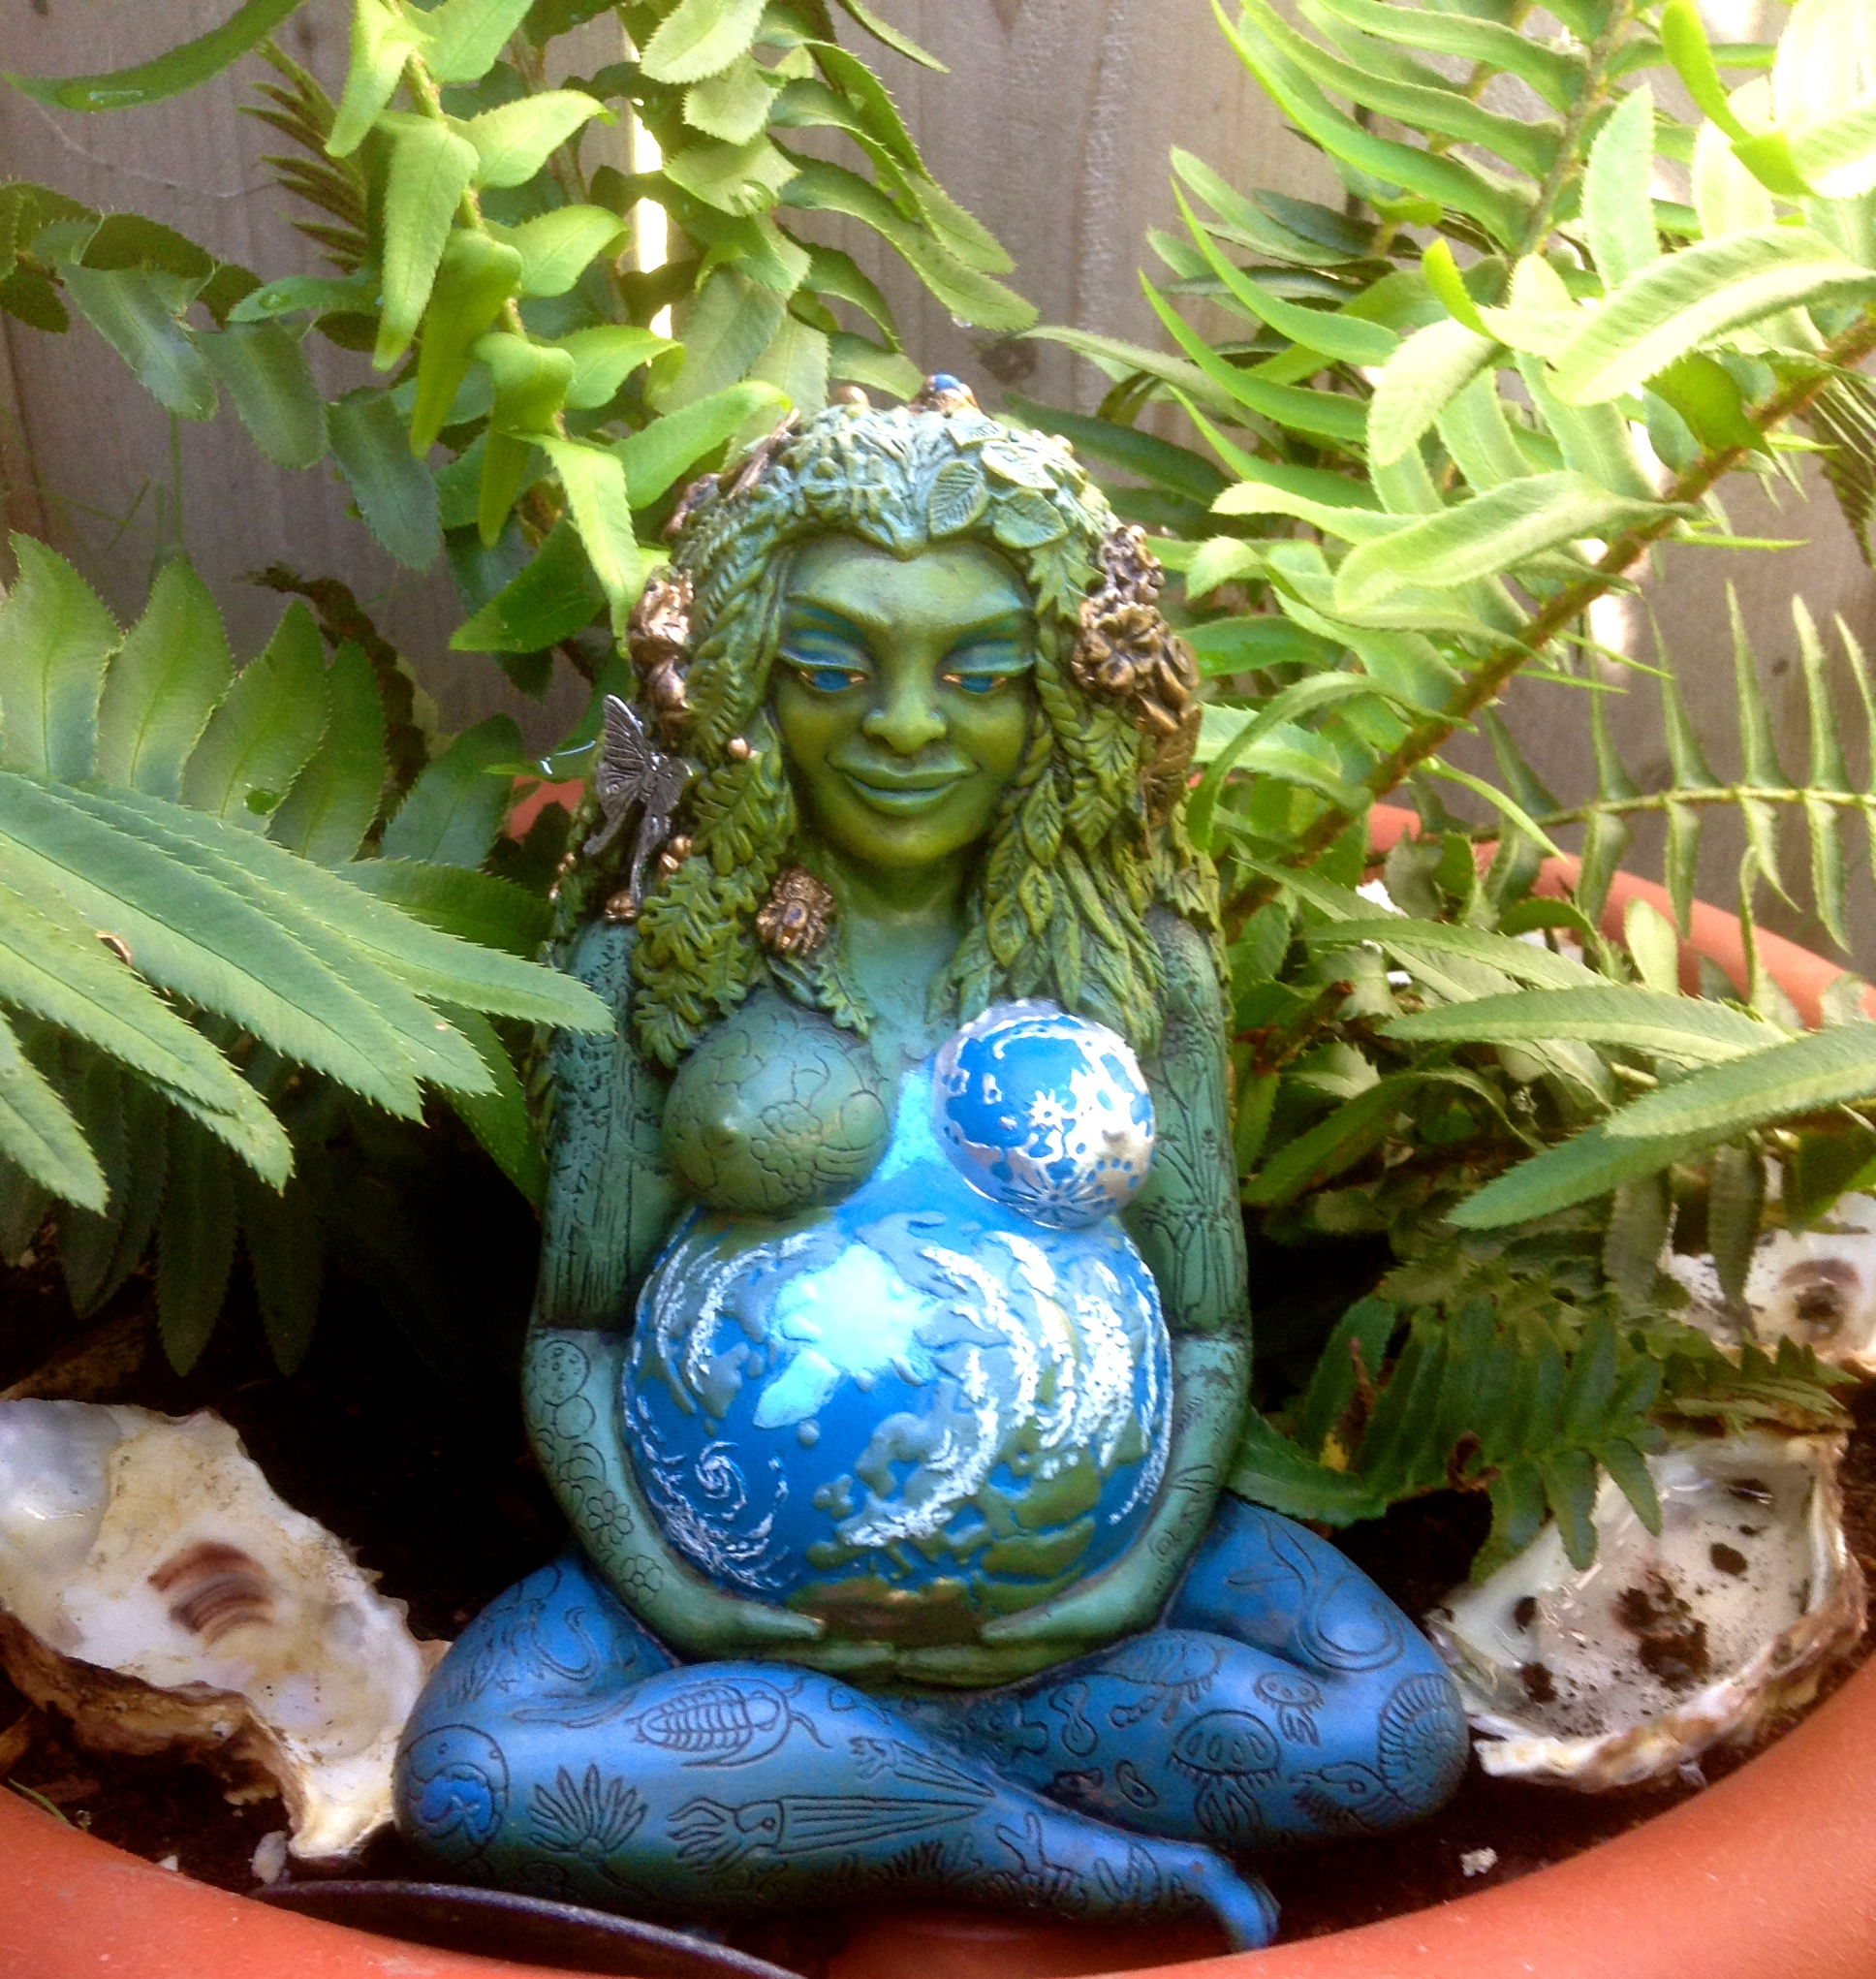 Gaia statue among the ferns